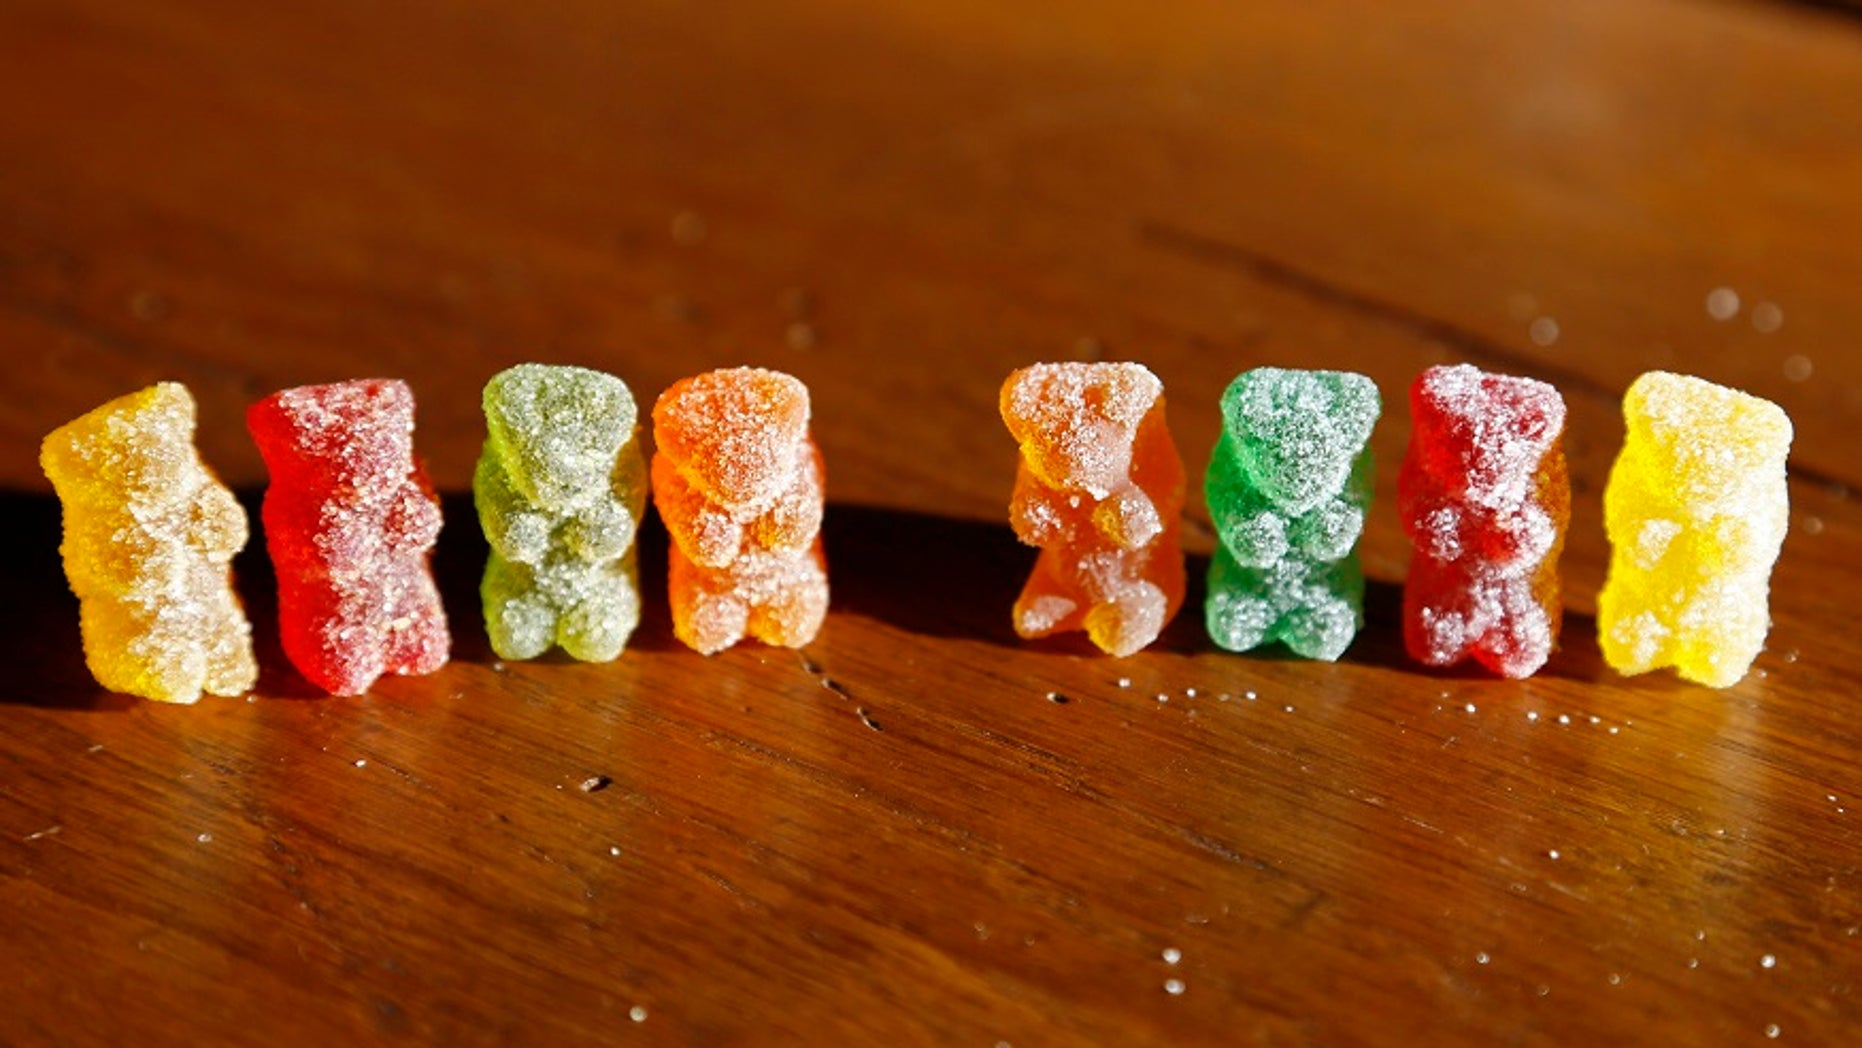 11 Indiana teens reportedly ate THC-laced gummy bears and became ill, police say.